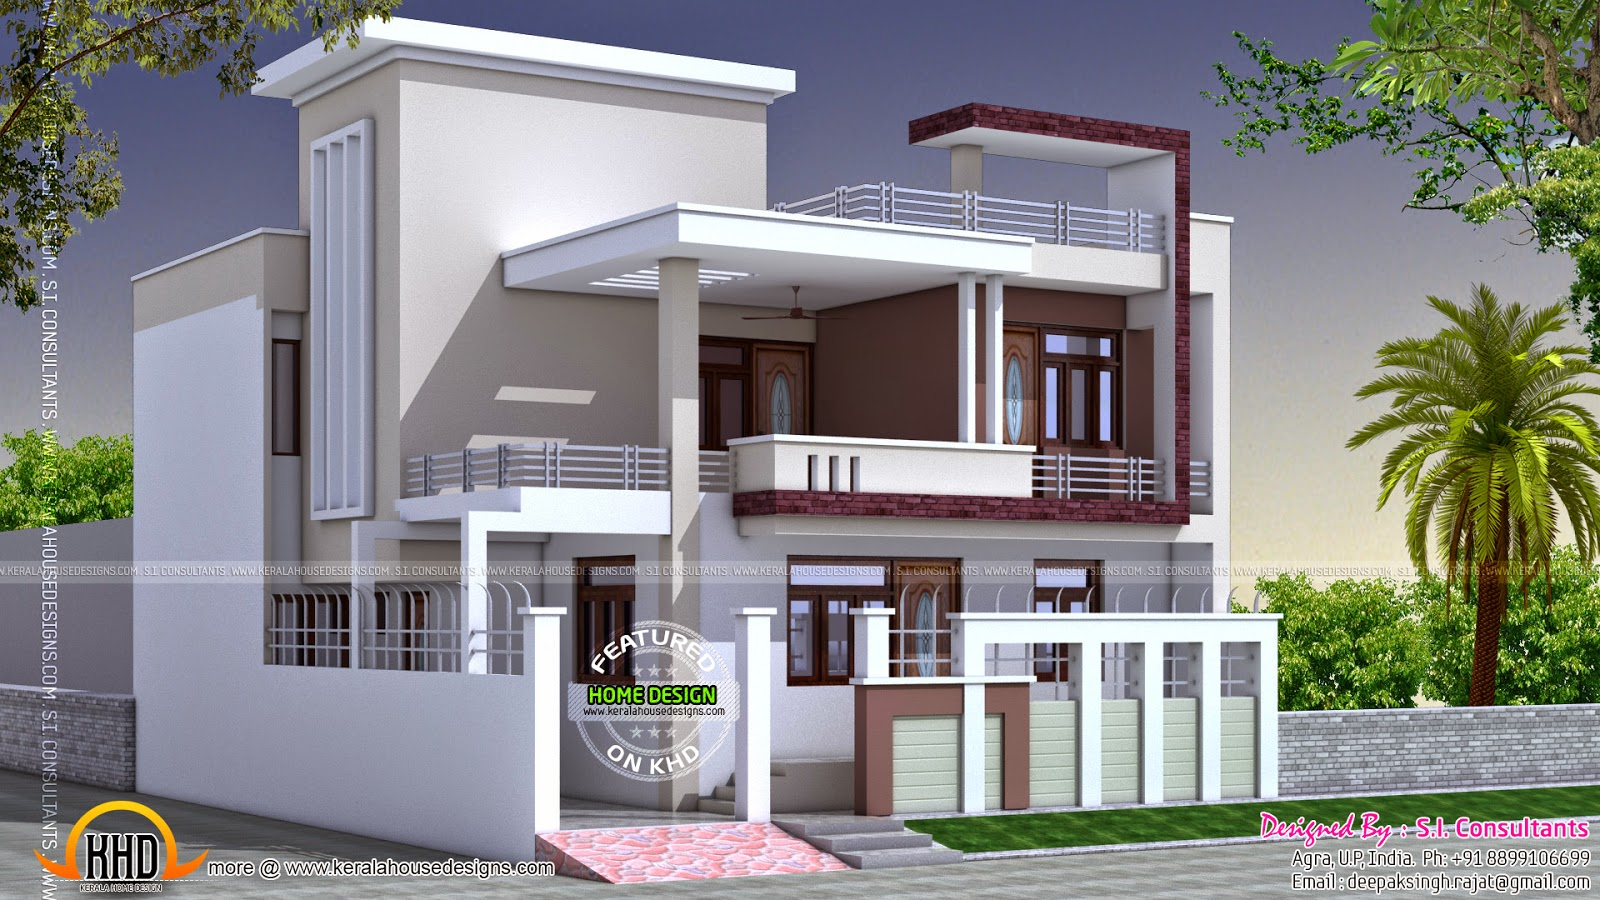 North Indian Square Roof House Kerala Home Design And Floor Plans 8000 Houses